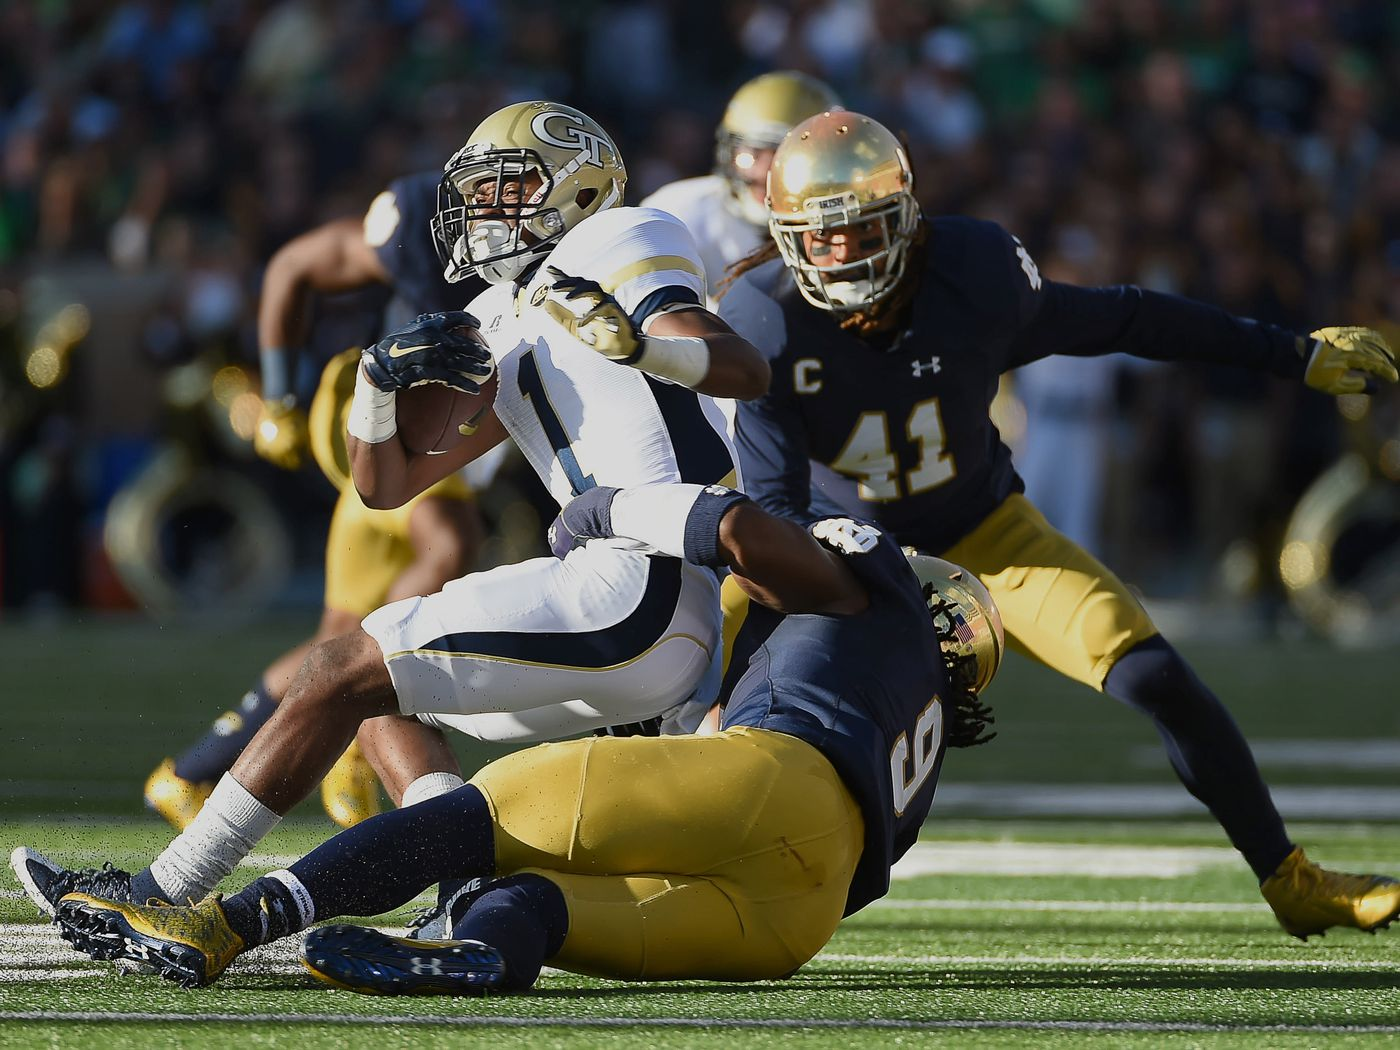 Notre Dame Vs Georgia Tech Yellow Jackets Football Betting Lines One Foot Down